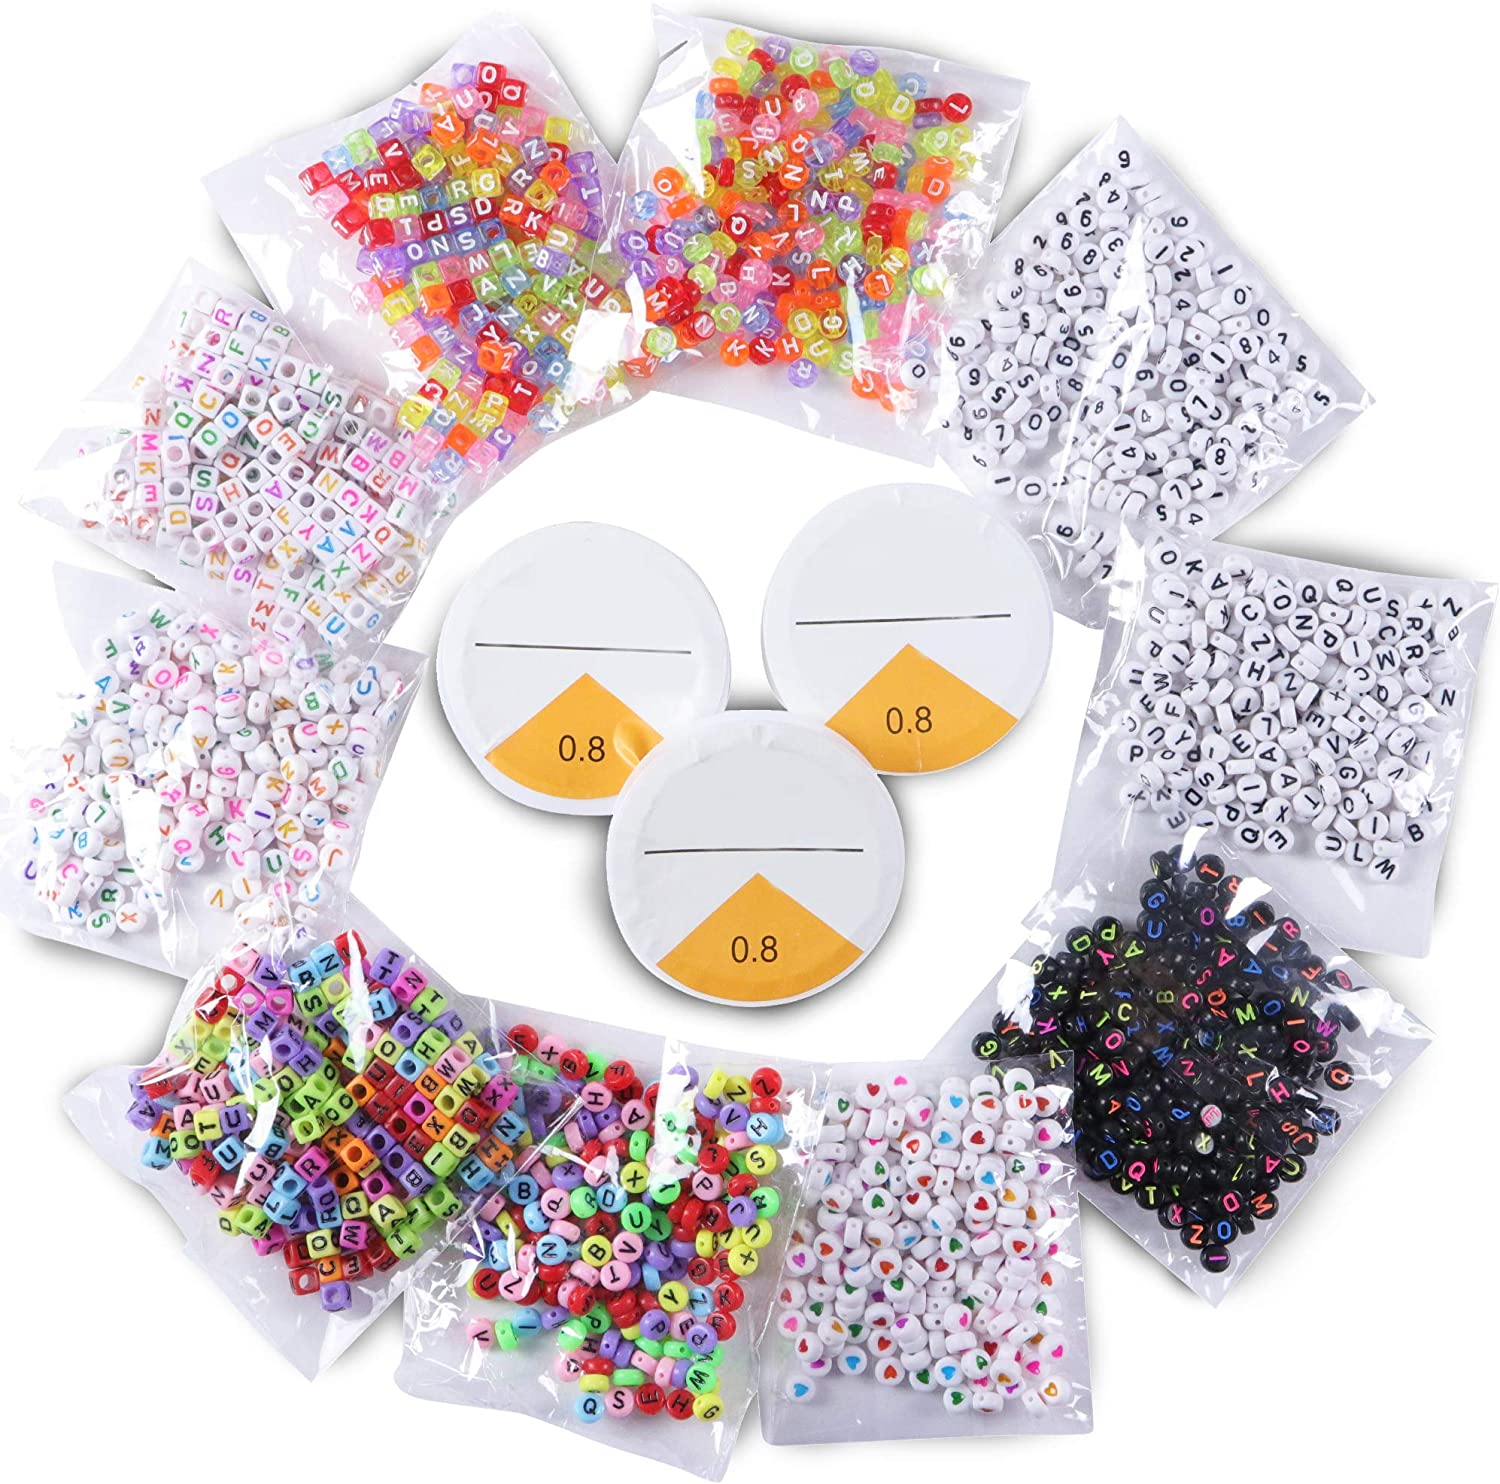 2000 pcs Max 40% OFF 10 Stylist Acrylic Alphabet Letter Cubes Pony Beads wit Manufacturer direct delivery